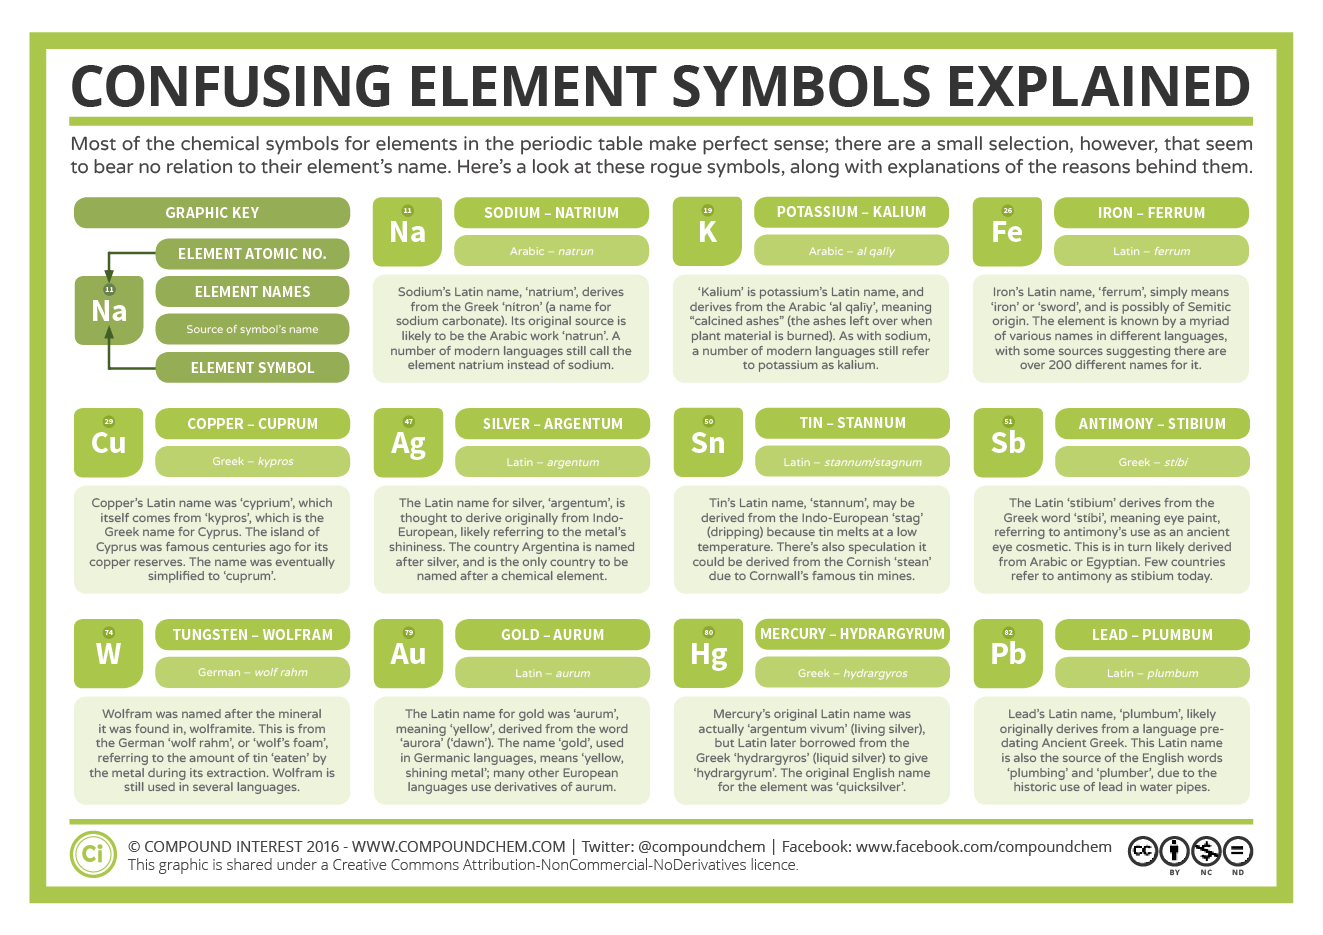 Compound interest element oddities 11 confusing chemical 11 confusing chemical element symbols explained urtaz